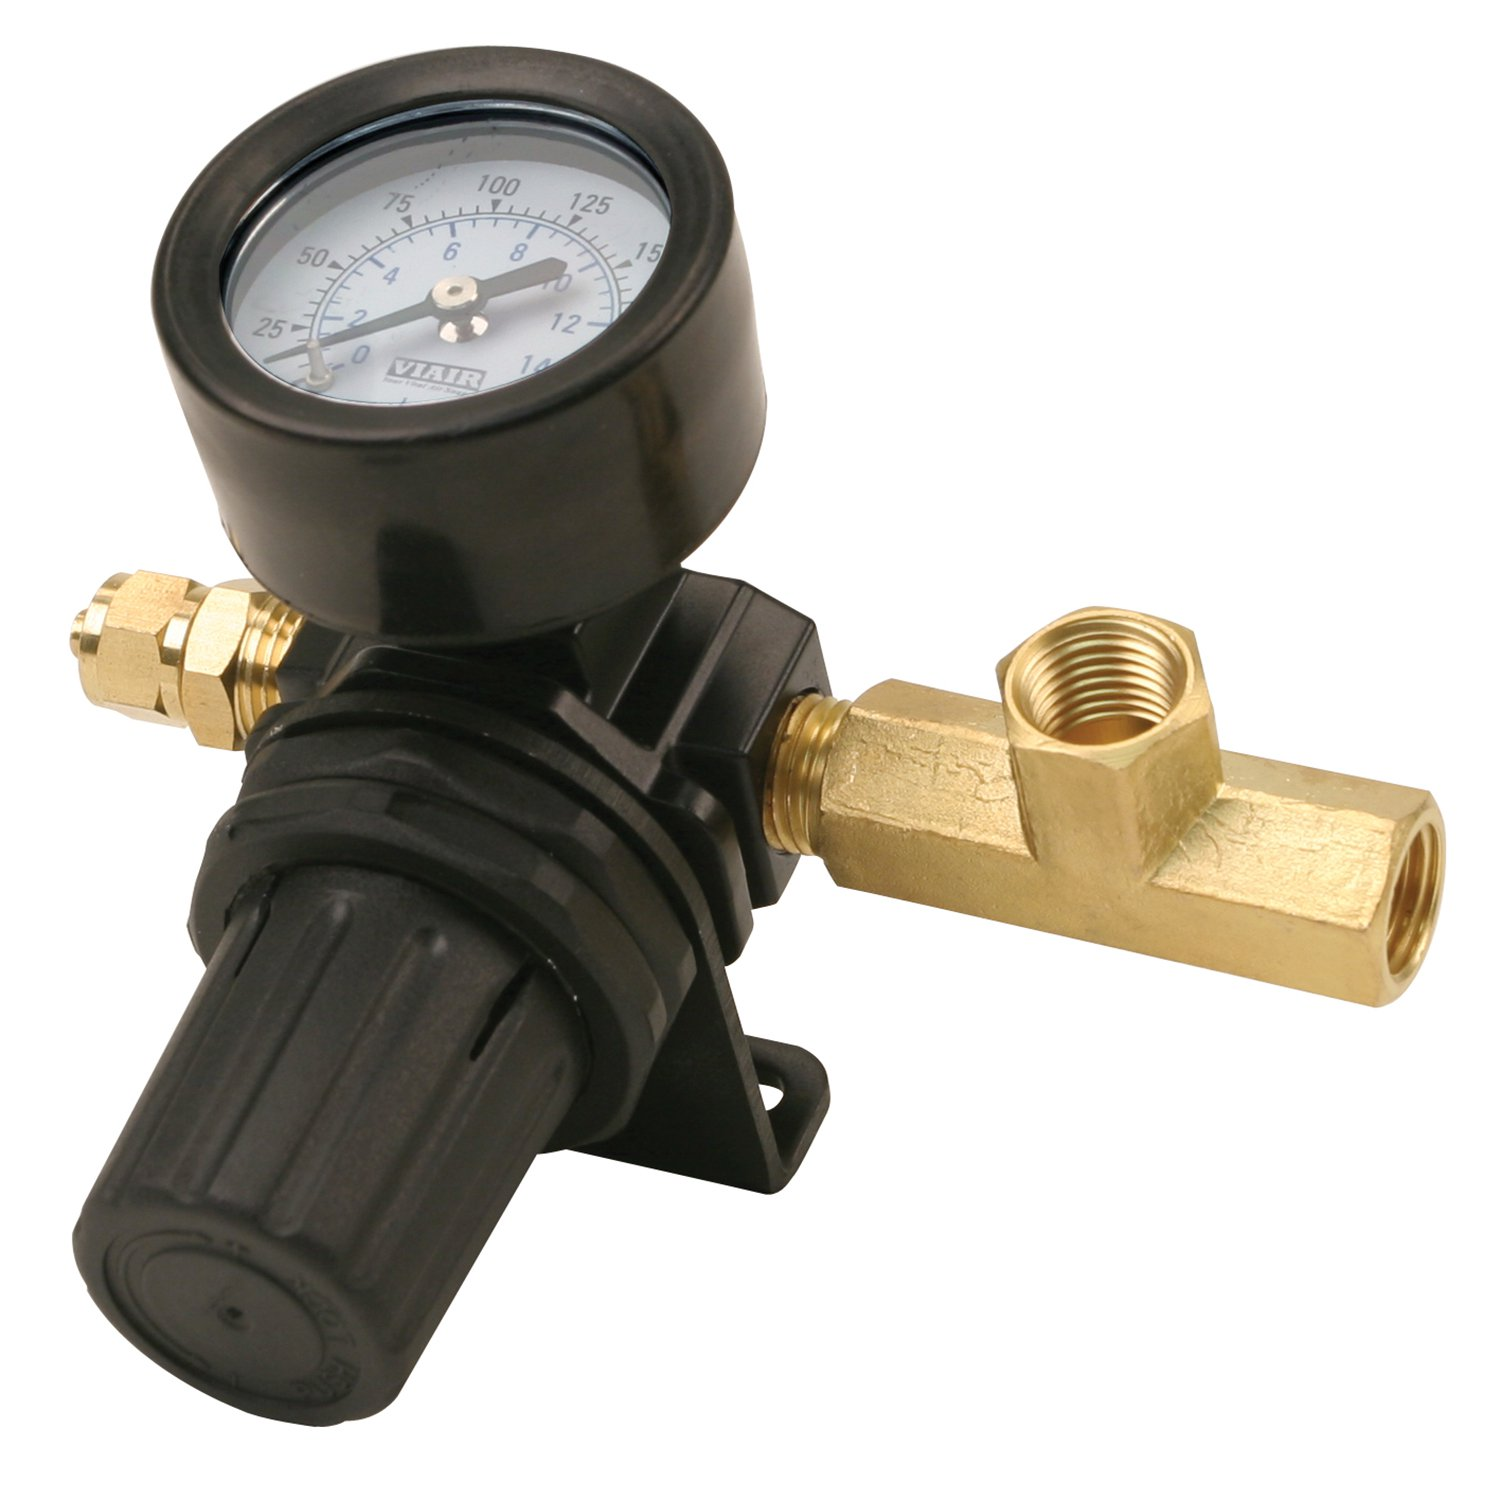 "Viair 0-220 PSI Gauge Air Tank Pressure Regulator with 0.25"" Compression Fitting"